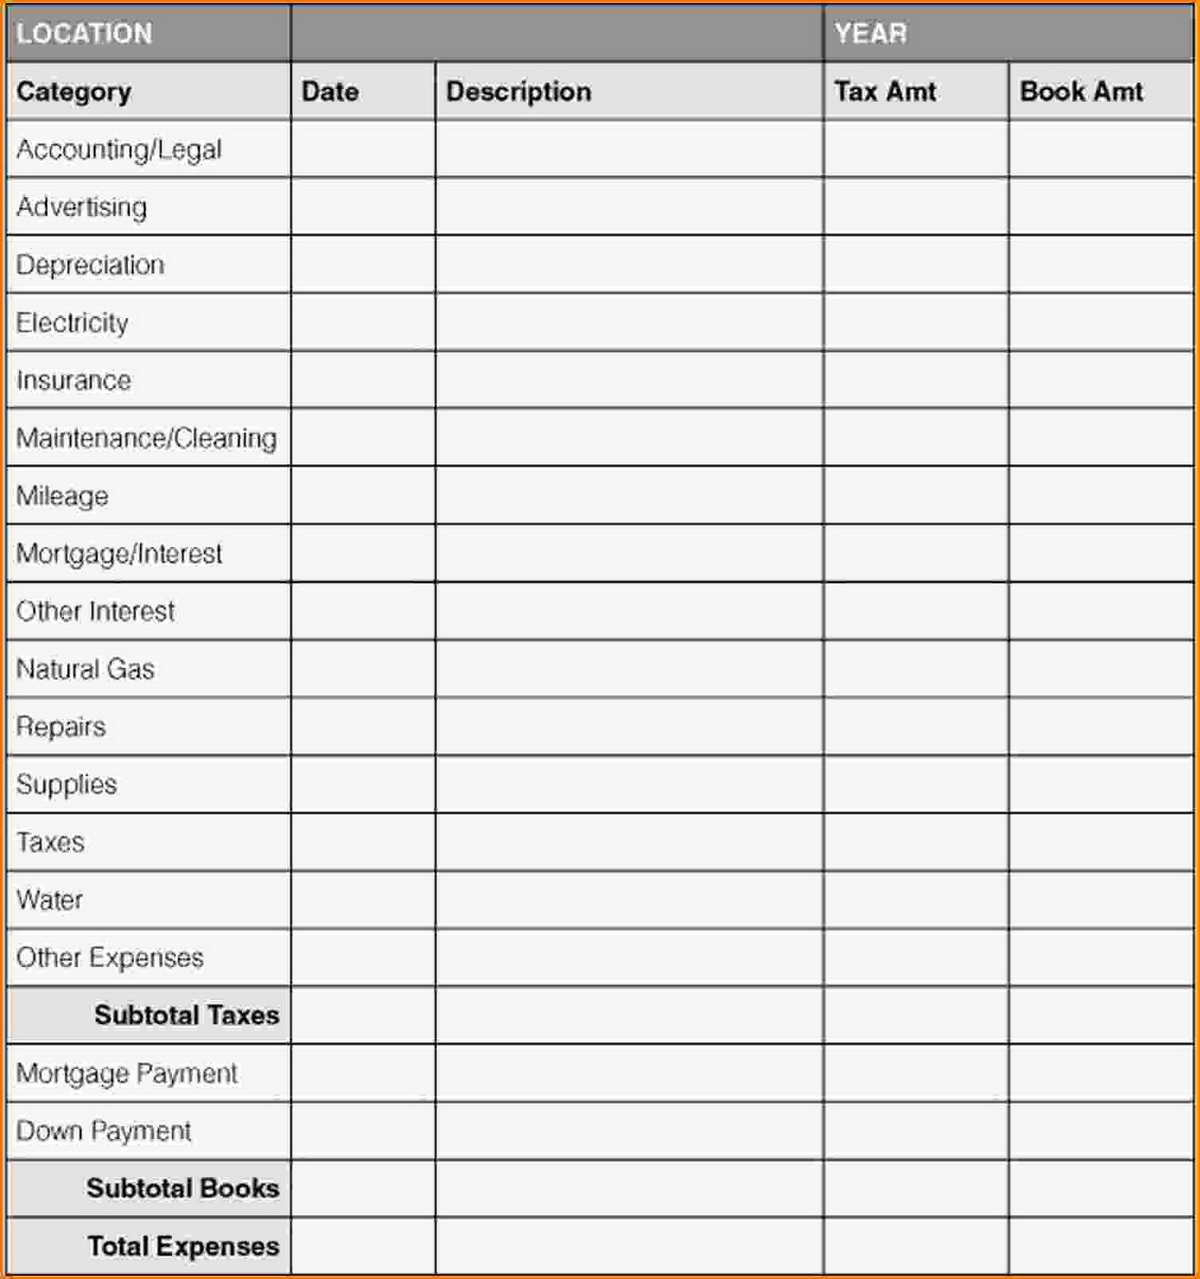 Business Expense Tracking Spreadsheet With Small Business Expenses With Financial Spreadsheet For Small Business